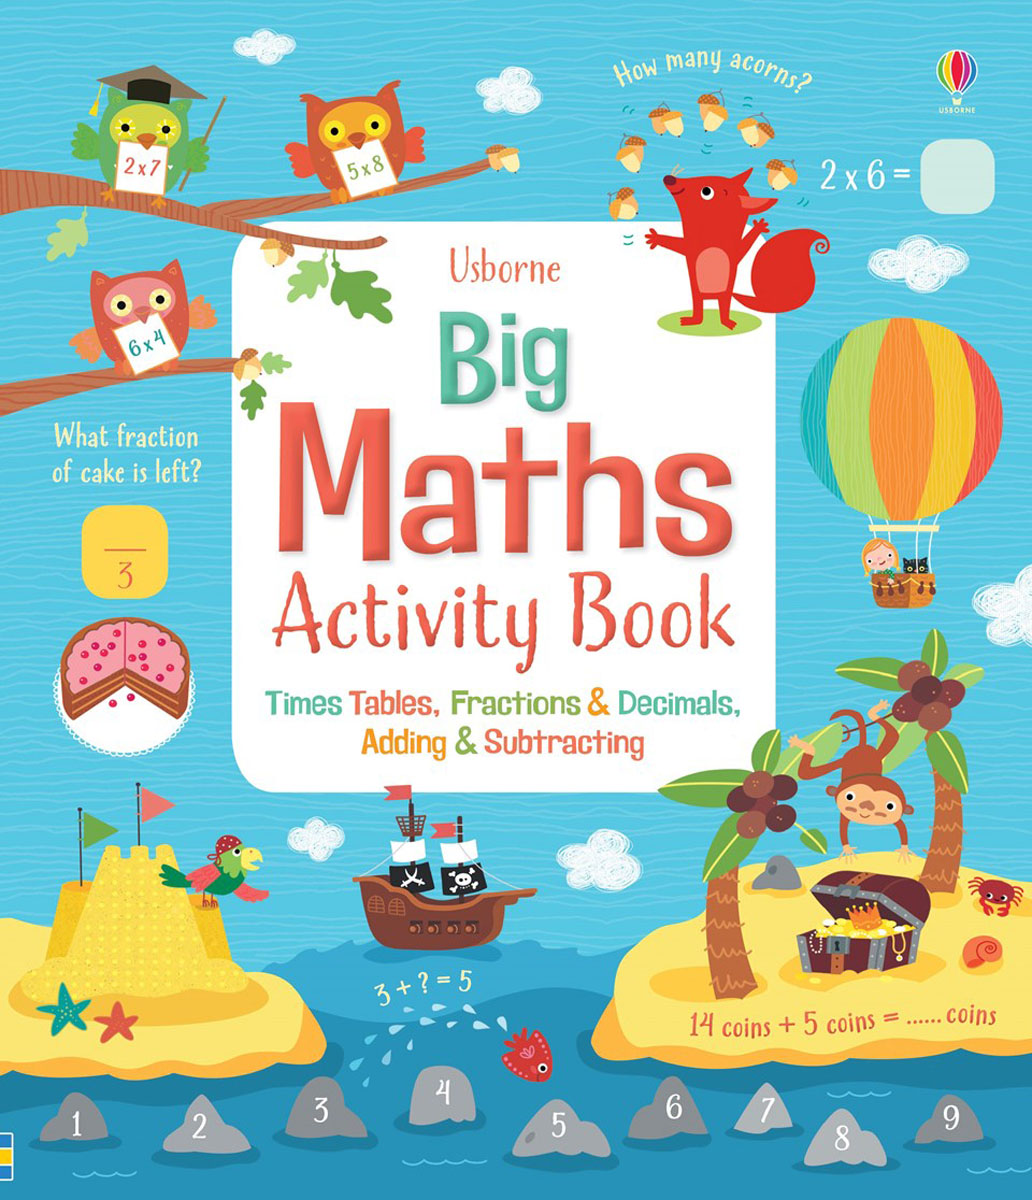 Big maths activity book mastering arabic 1 activity book